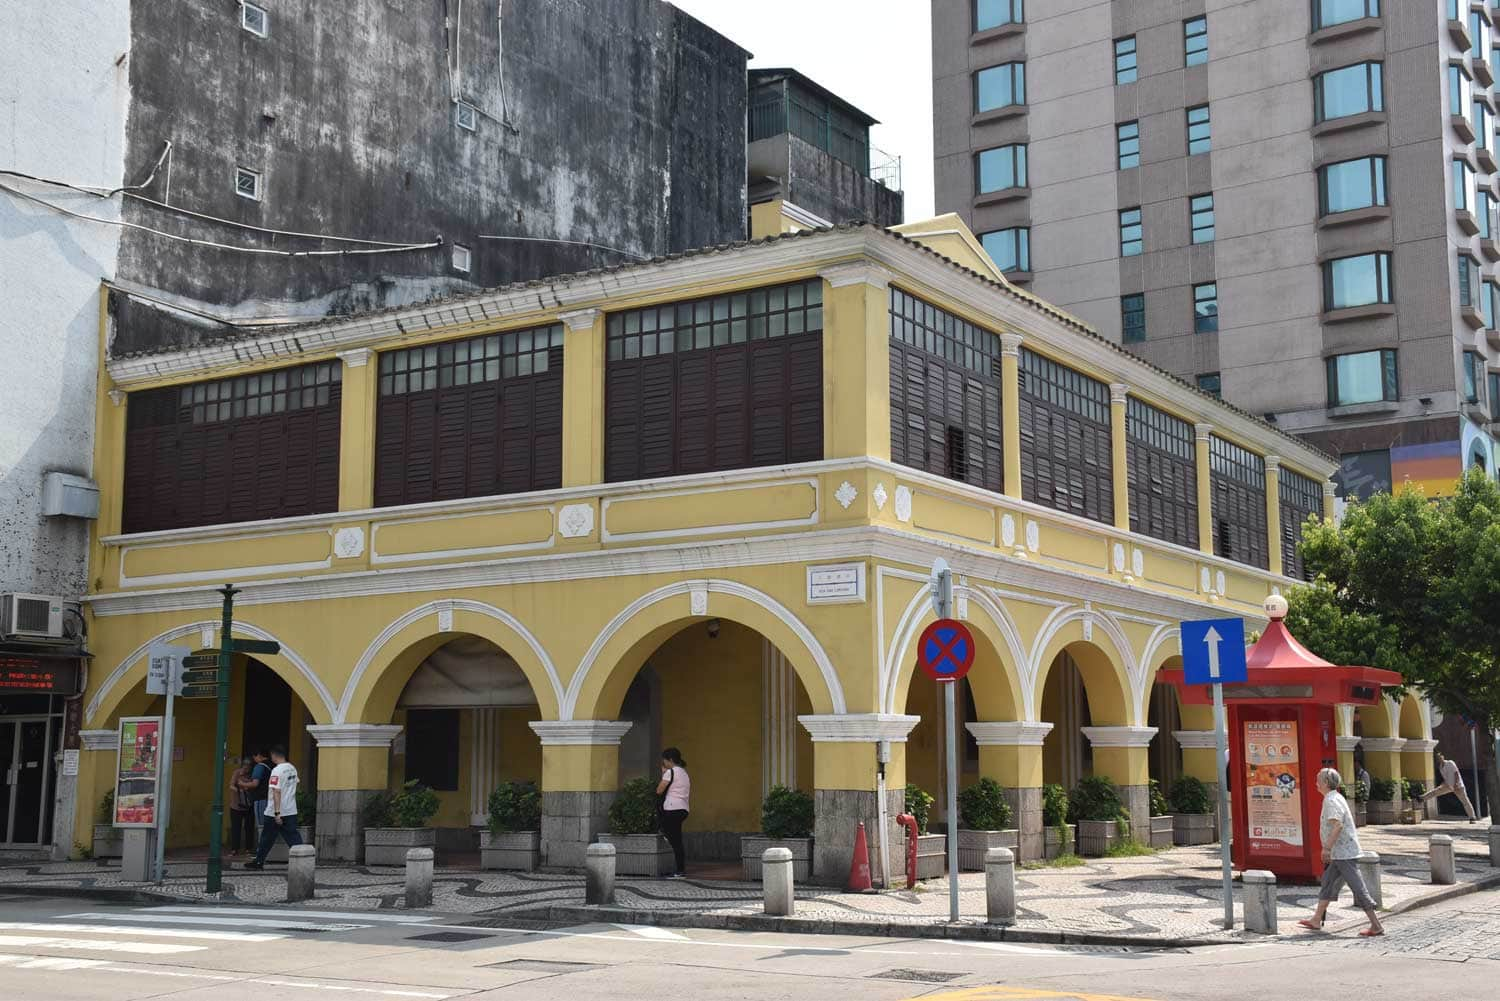 The Old Opium House